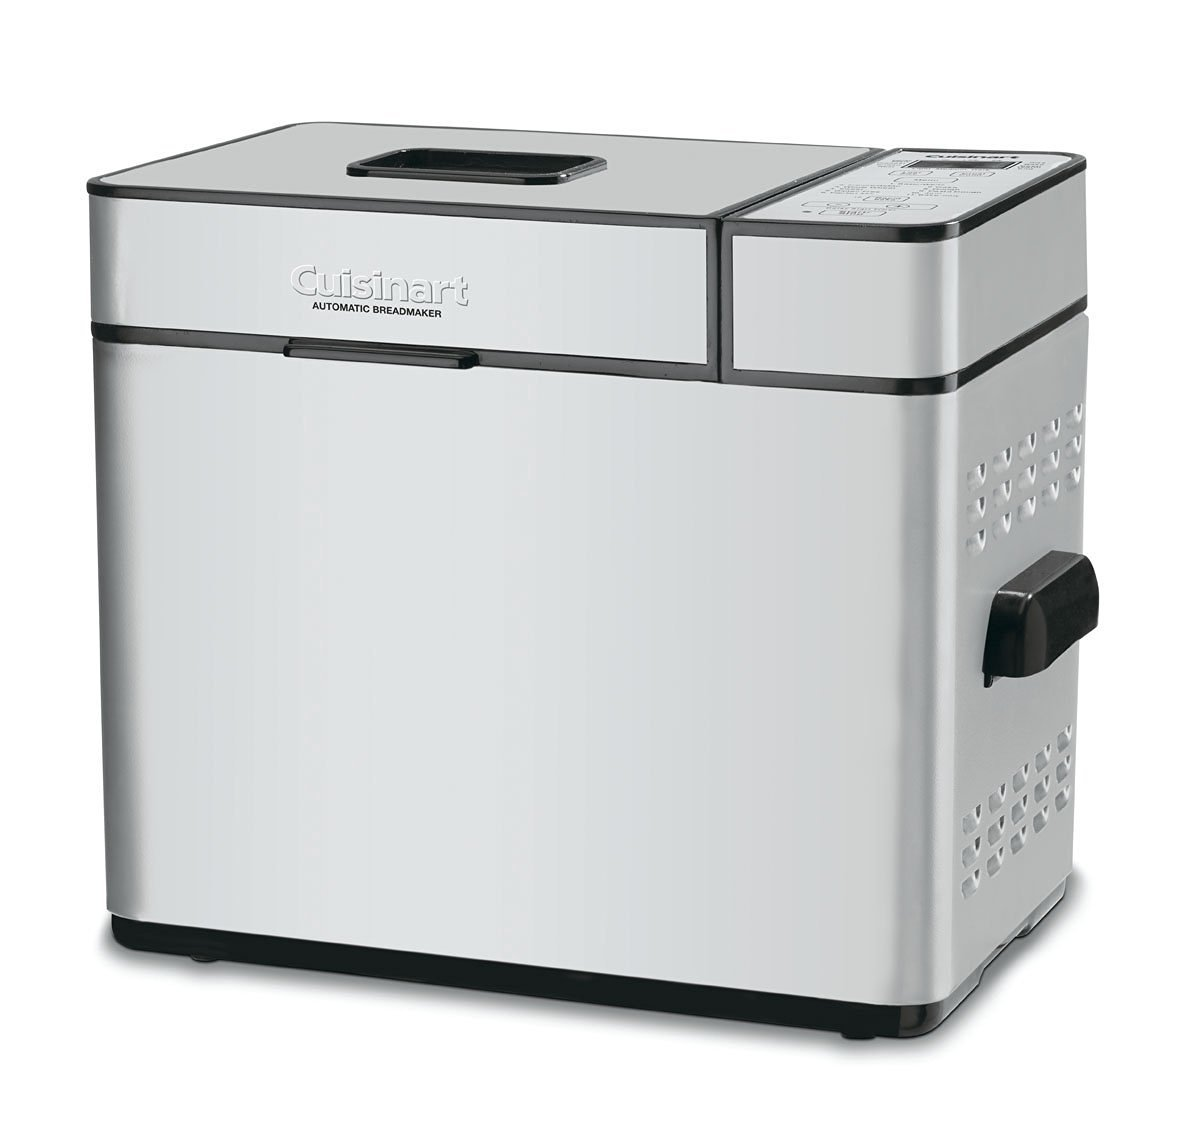 4 Cuisinart BMKR-200PC Fully Automatic Compact Bread Maker